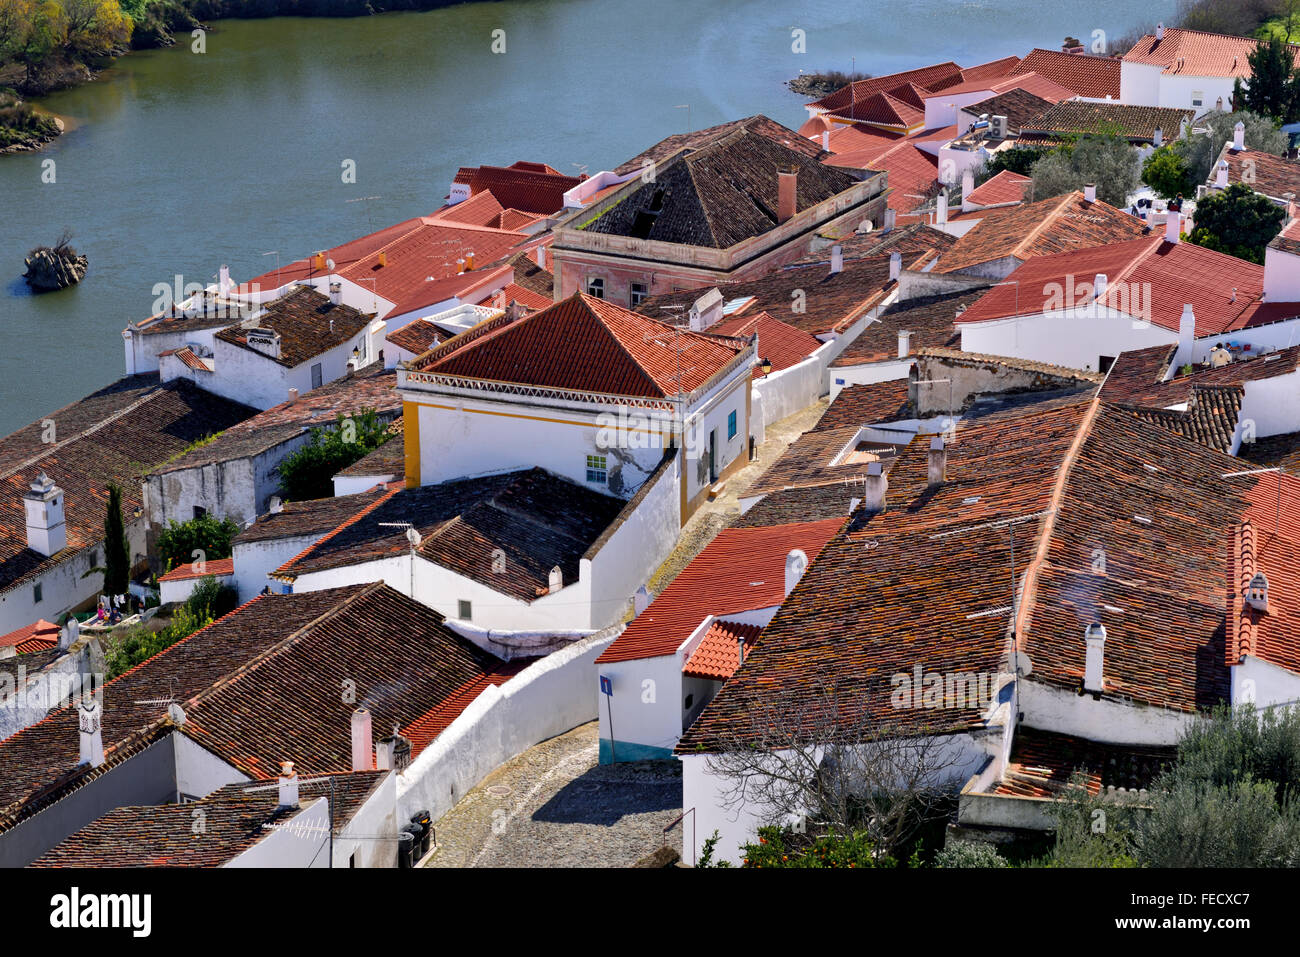 Portugal, Alentejo: View to the rooftops of historic village Mértola overlooking river Guadiana - Stock Image